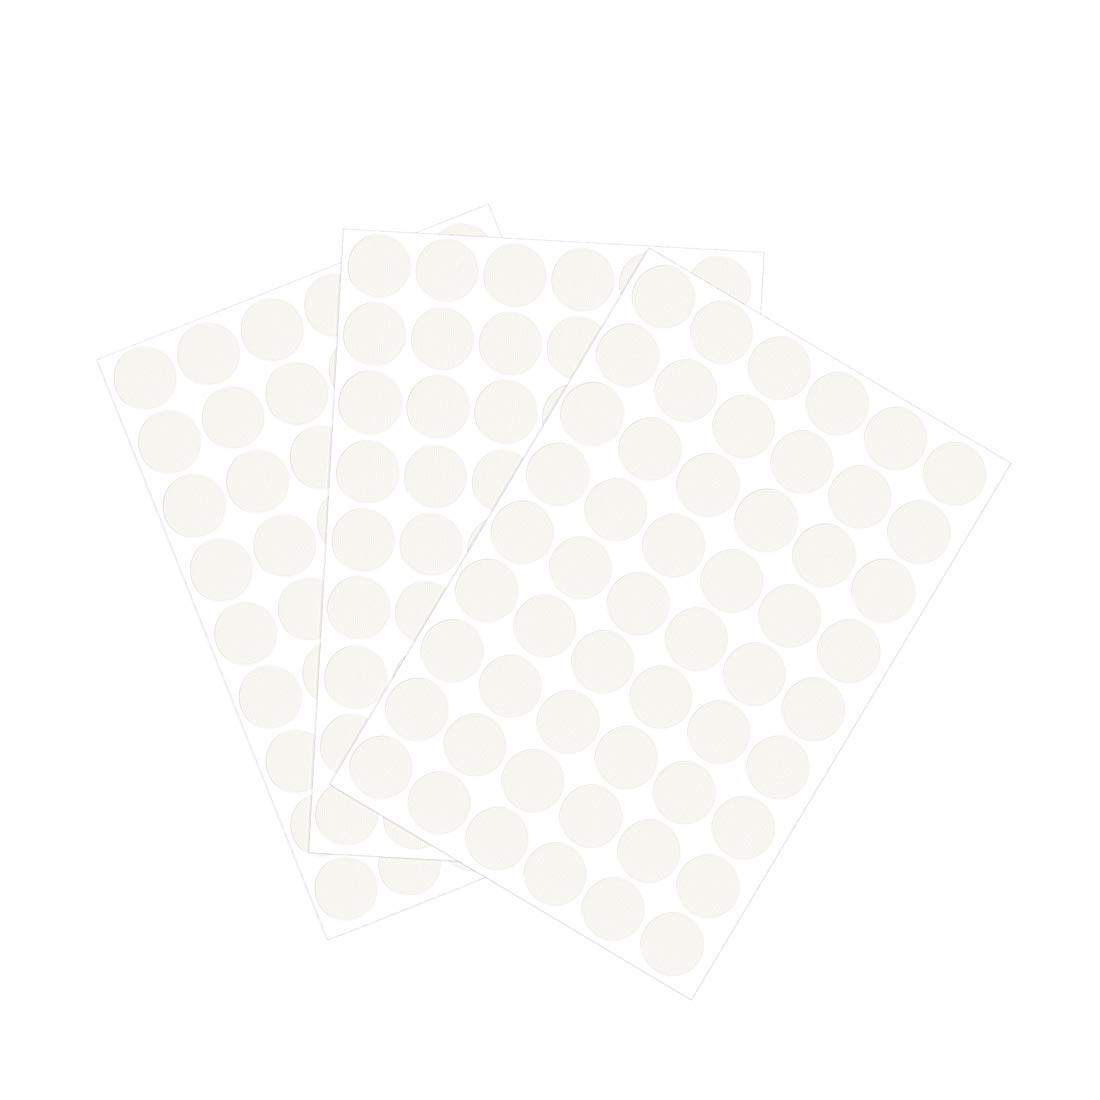 uxcell Screw Hole Covers Stickers Textured Plastic Self Adhesive Stickers for Wood Furniture Cabinet Shelve Plate 21mm Dia 162pcs in 3Sheet White Lines